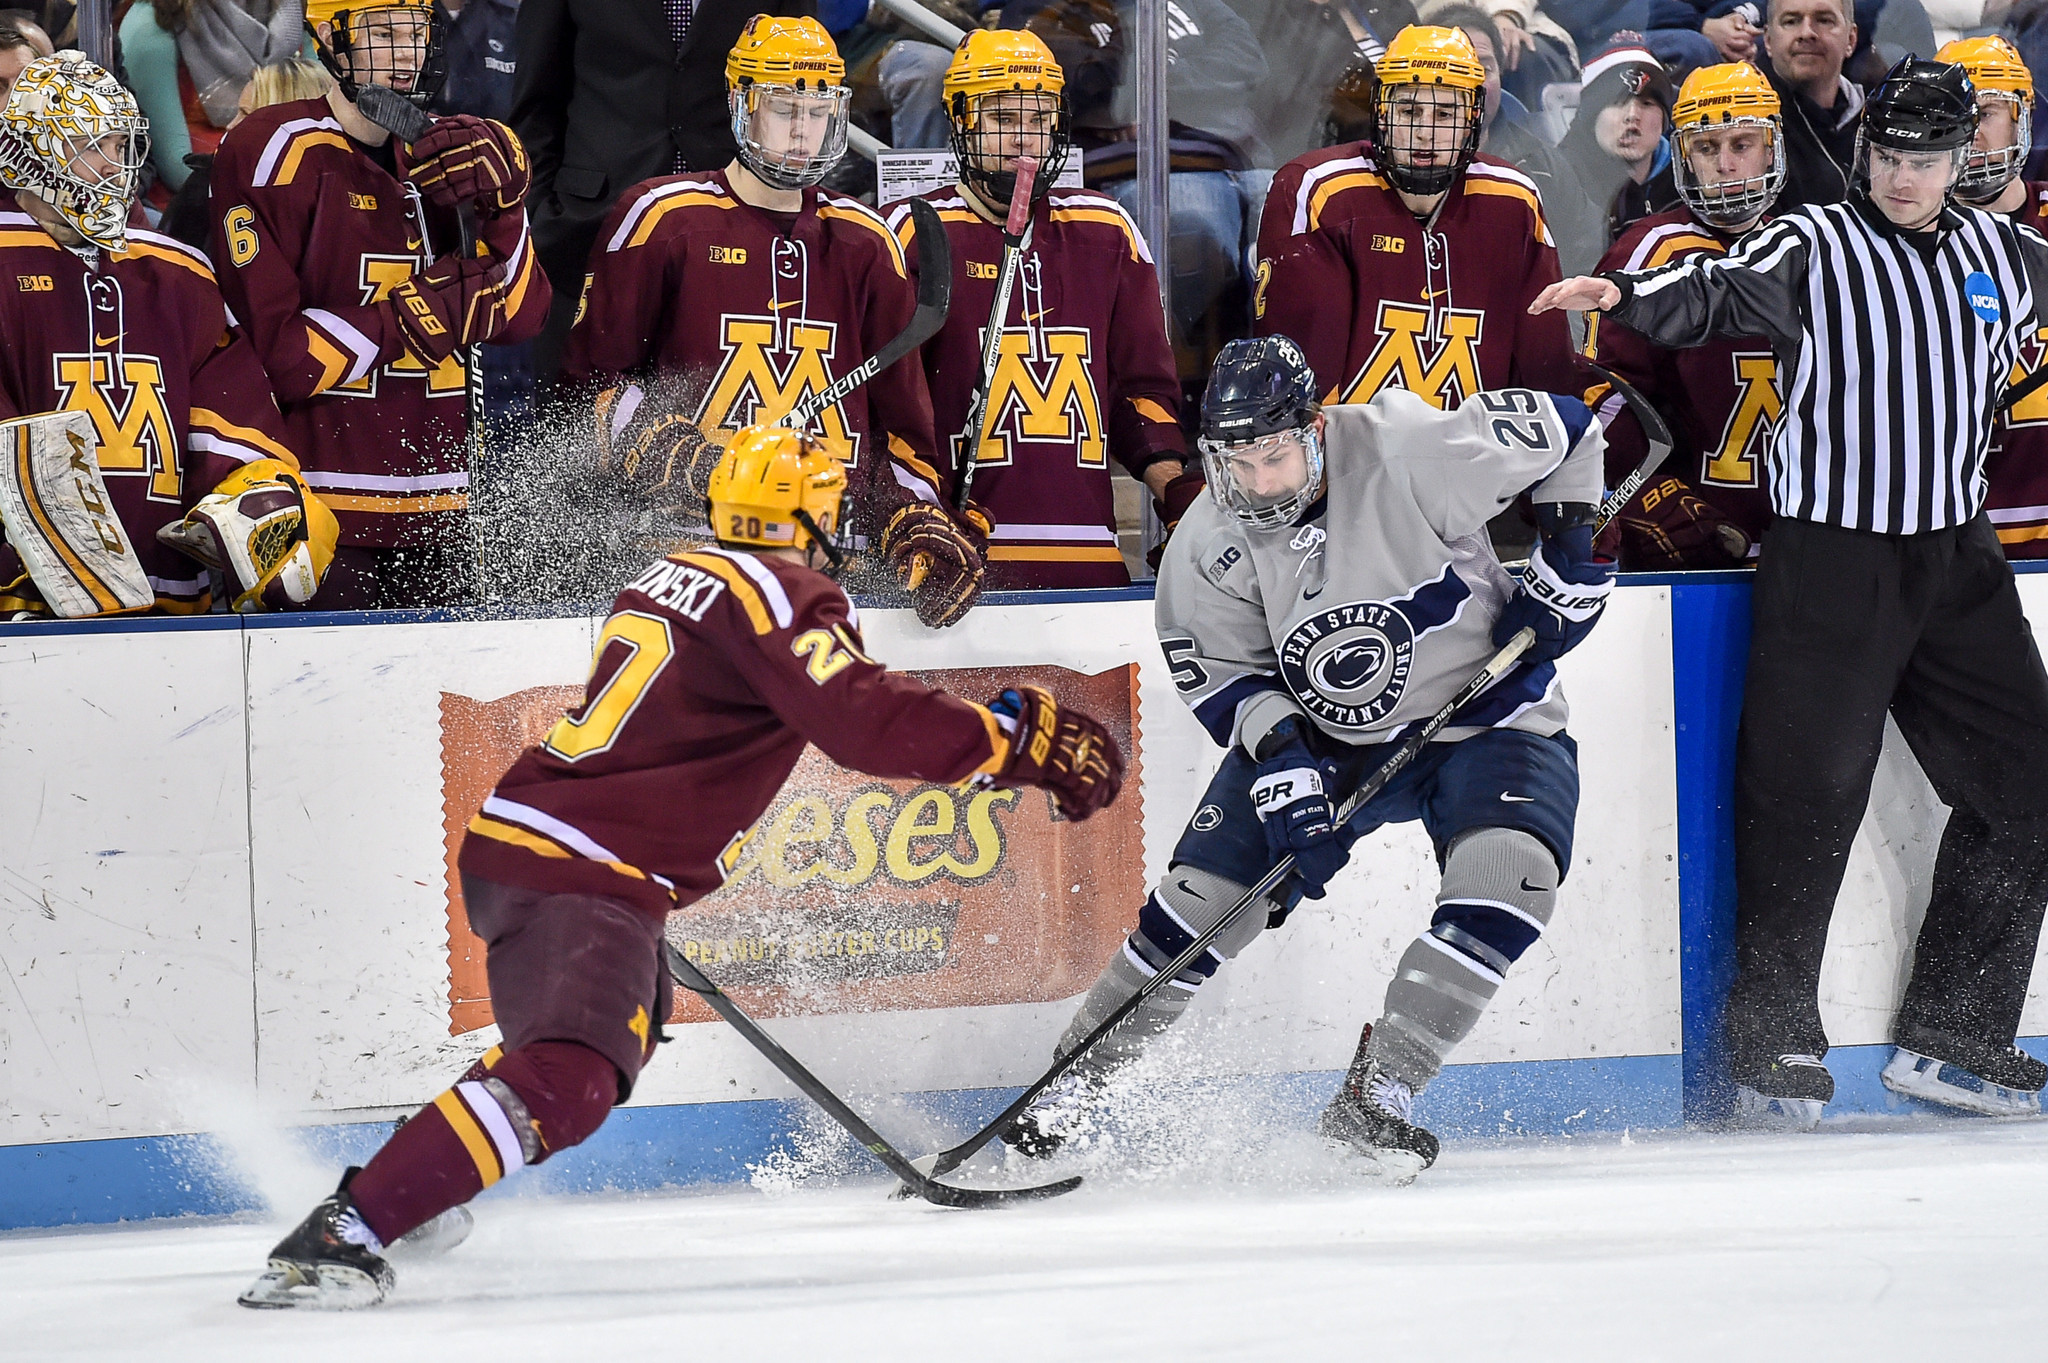 penn state 2015-16 hockey schedule announced. - the morning call